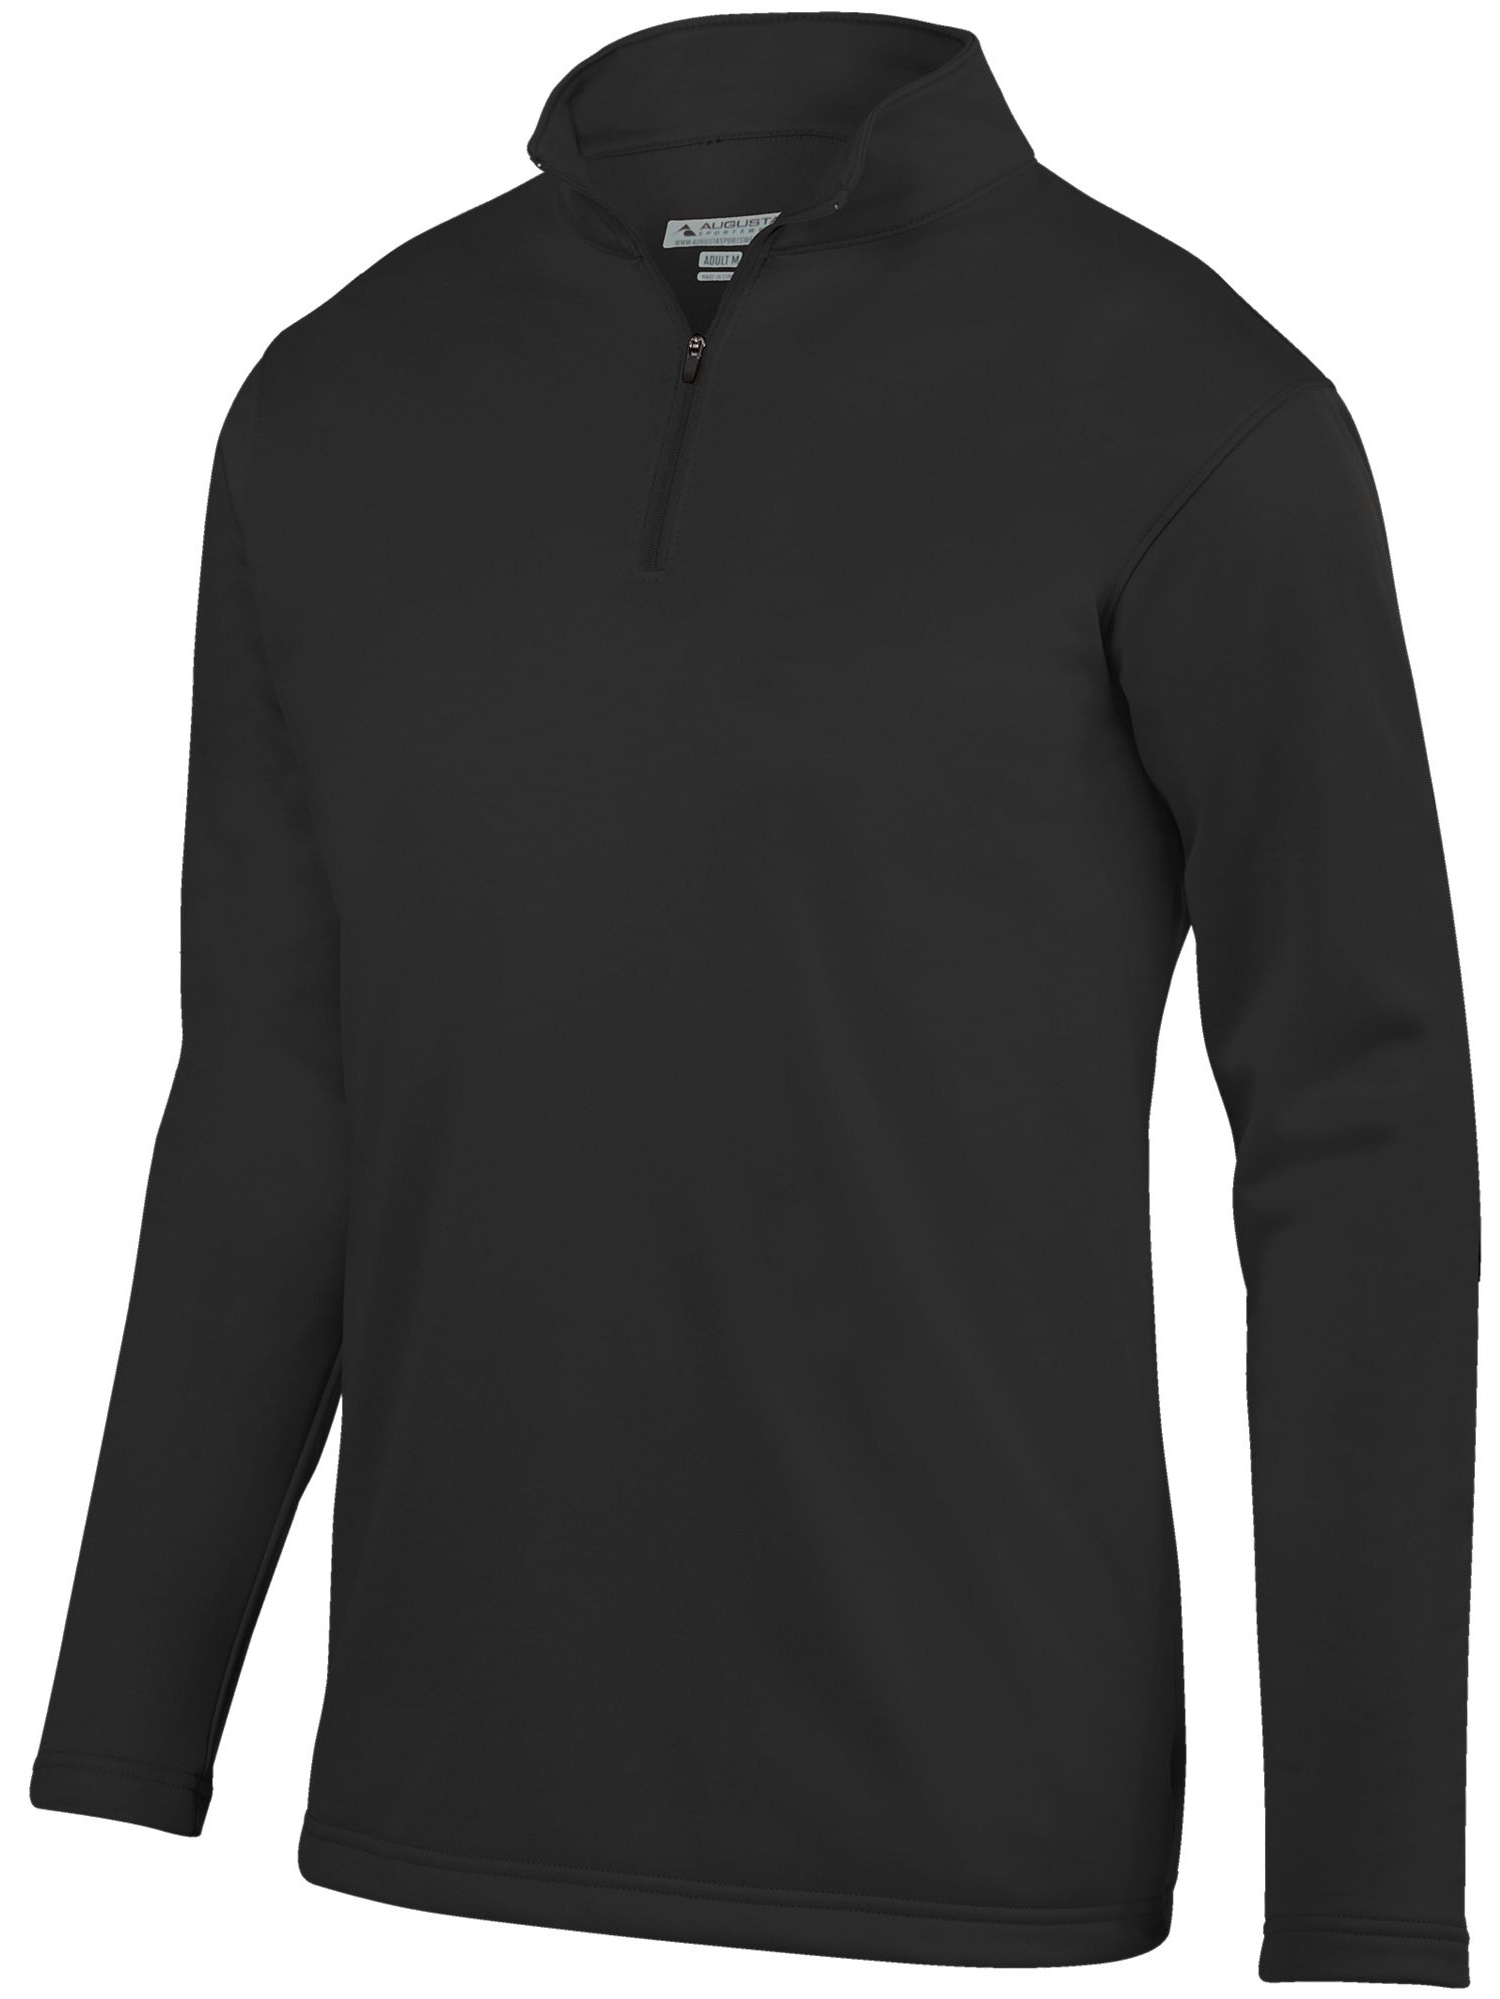 Augusta 5508 Youth Wicking Fleece Pullover